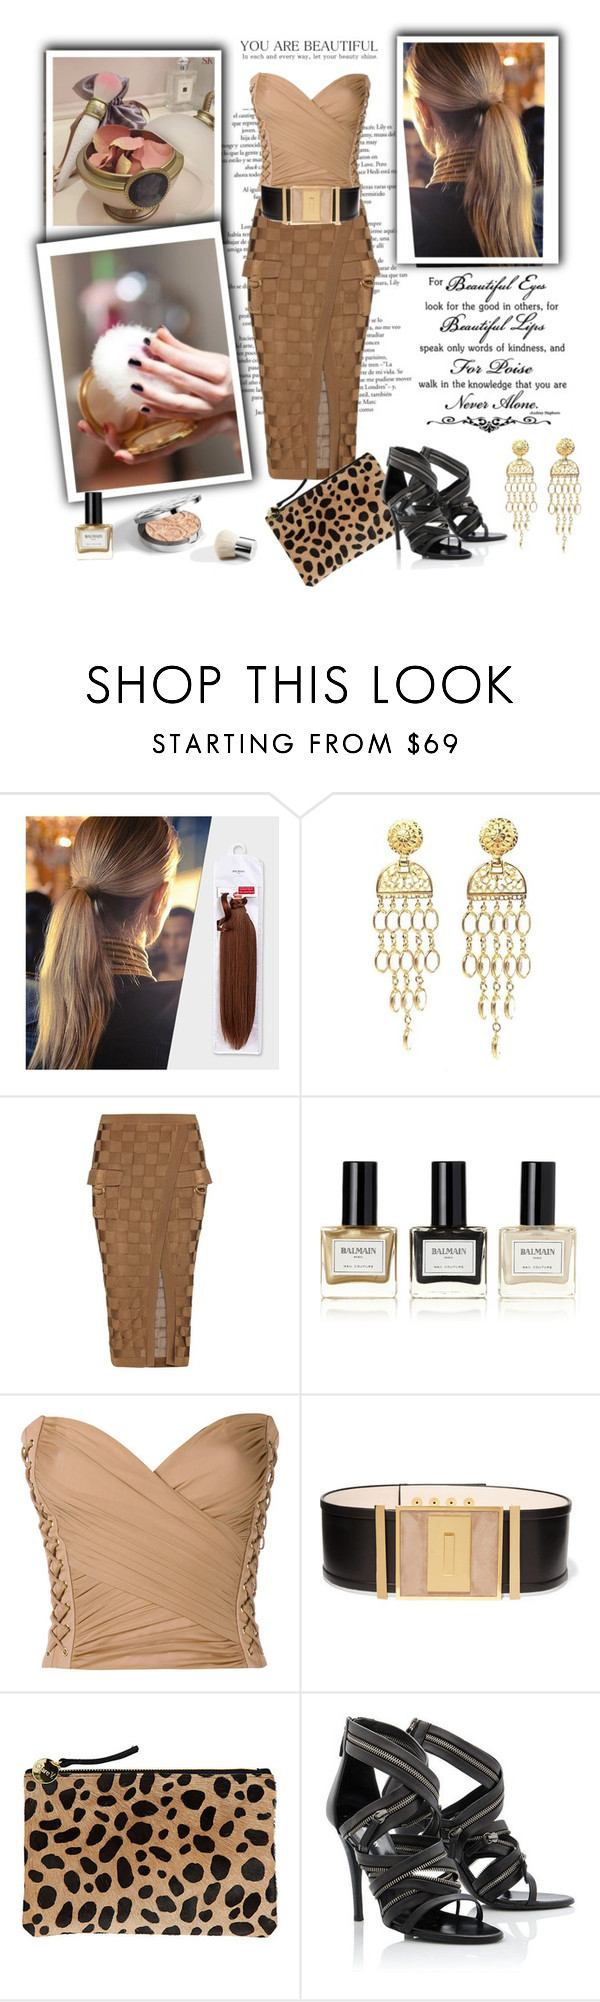 """CHIARA"" by livelfashion ❤ liked on Polyvore featuring Balmain, Clare V. and Giuseppe Zanotti"